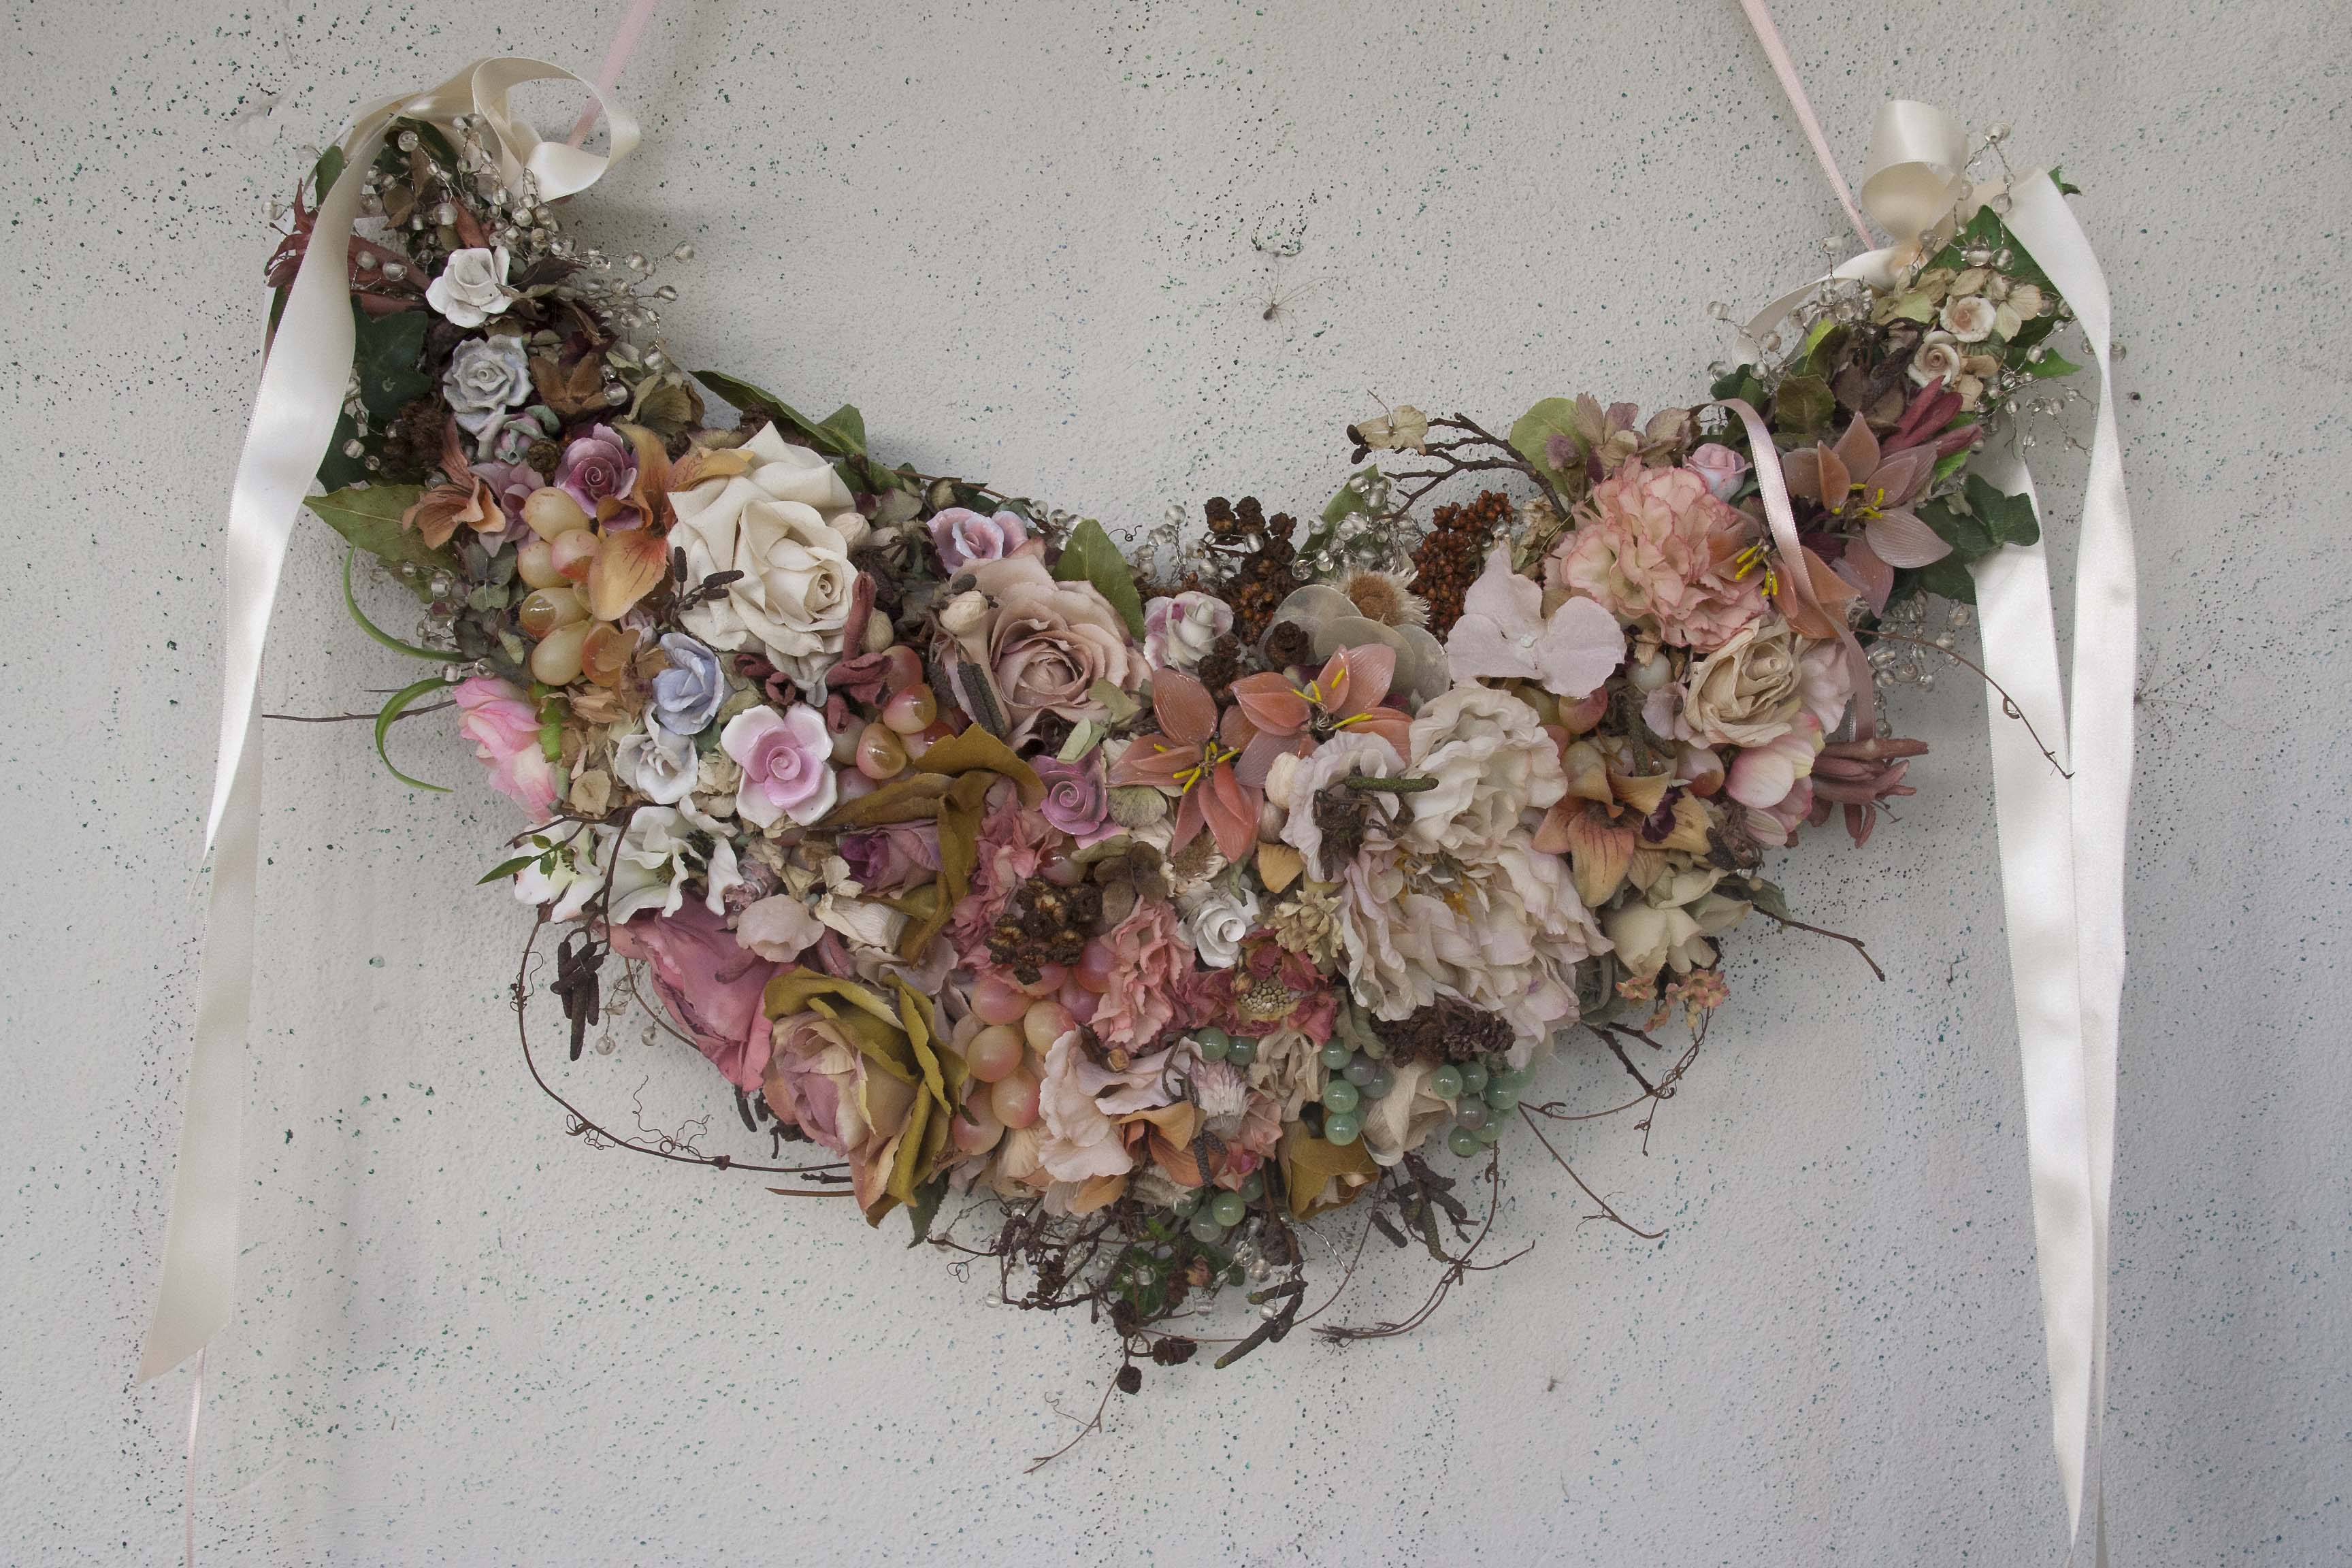 Romantic Hedgerow Garlands by Maria Aida